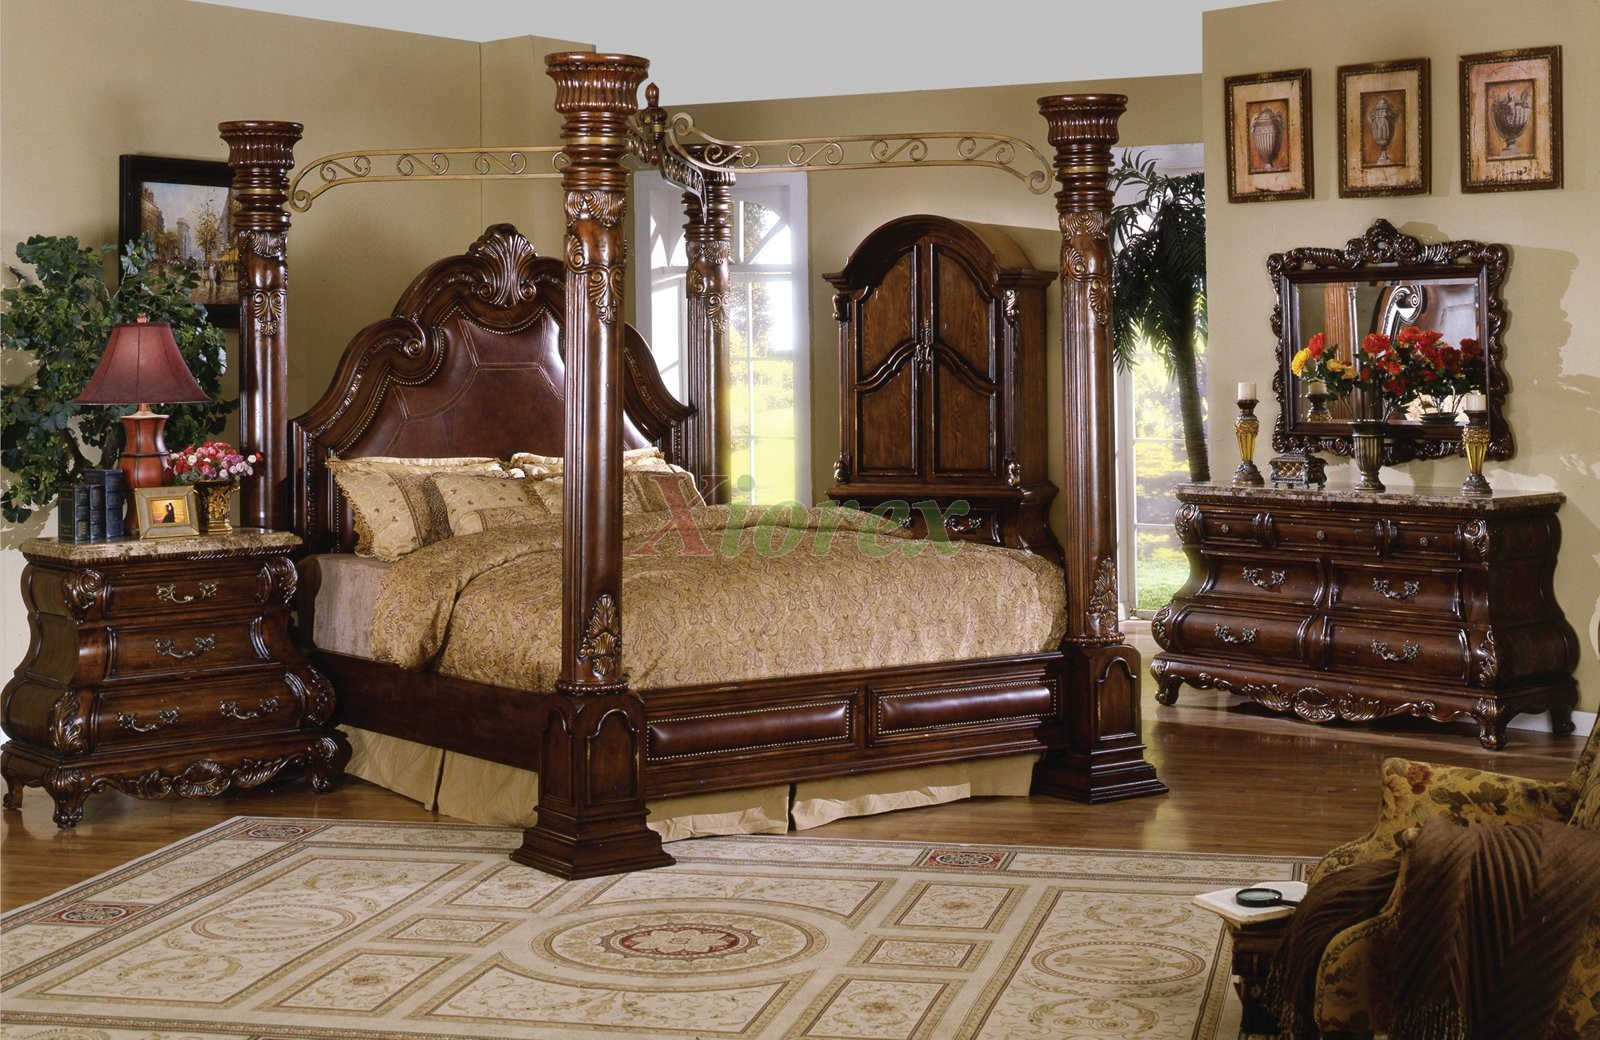 King Canopy Bed Bedroom Set 1600 x 1040